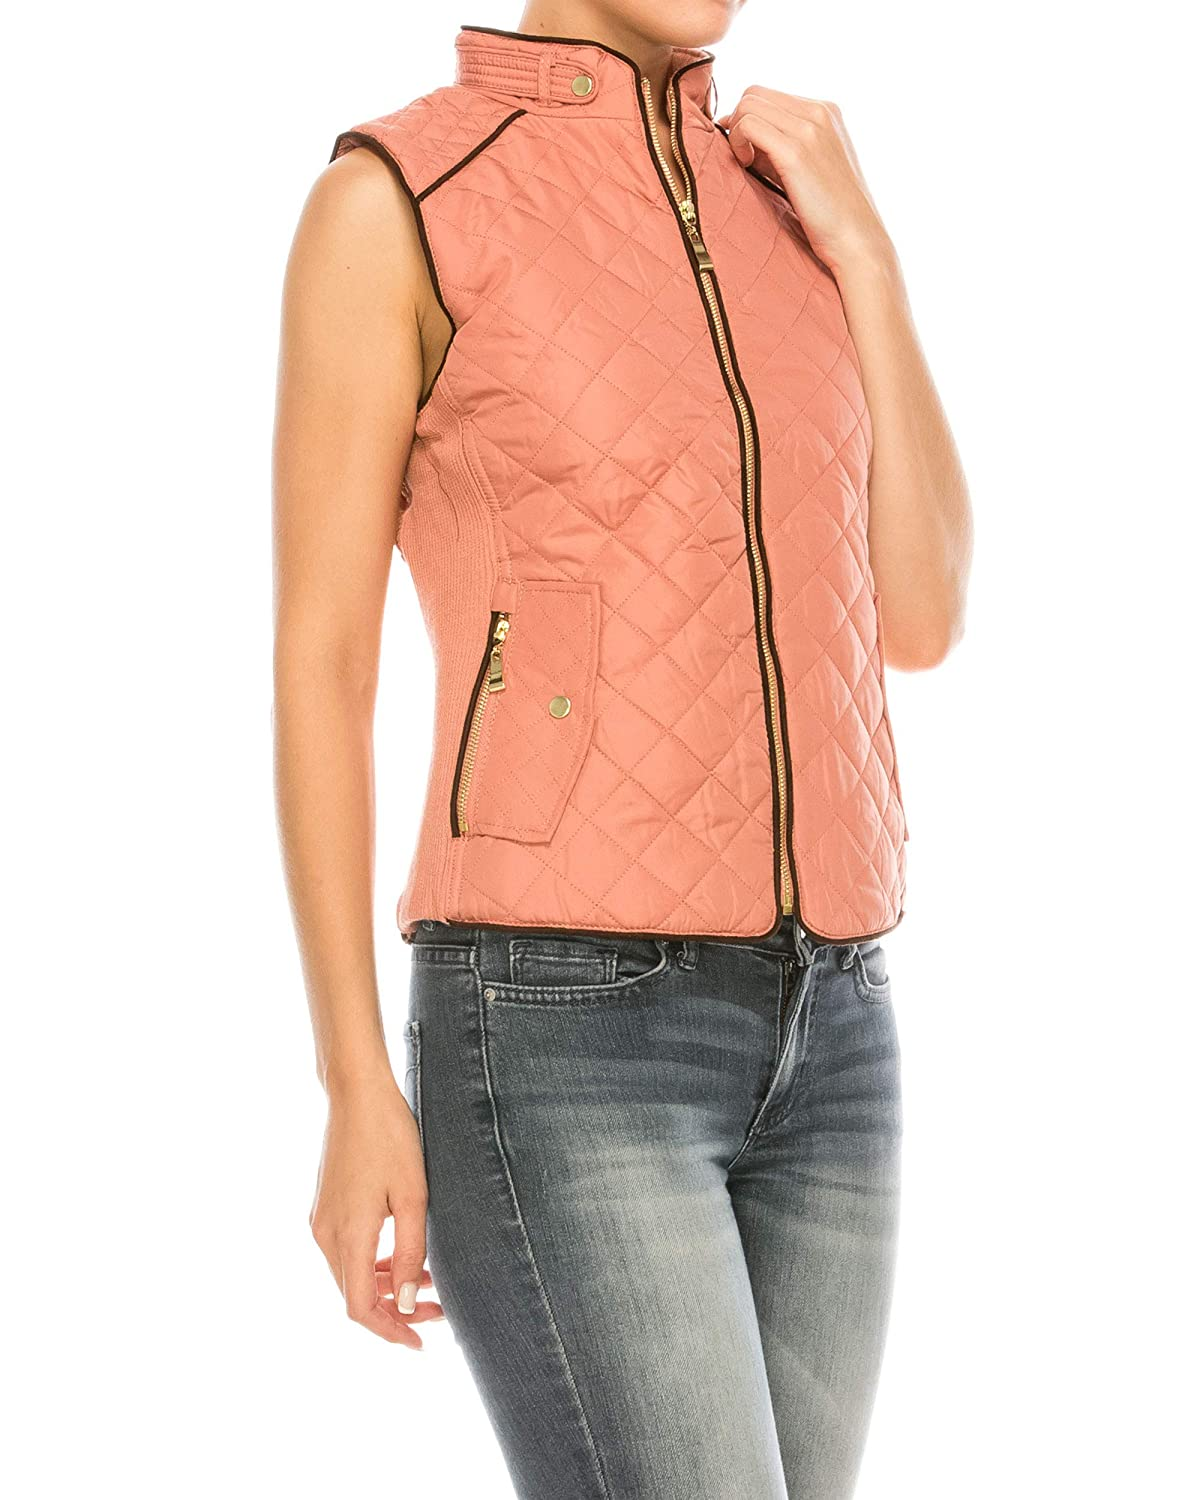 Nolabel Womens Lightweight Quilted Padding Zip Up Vest Jacket Suede Piping with Pocket